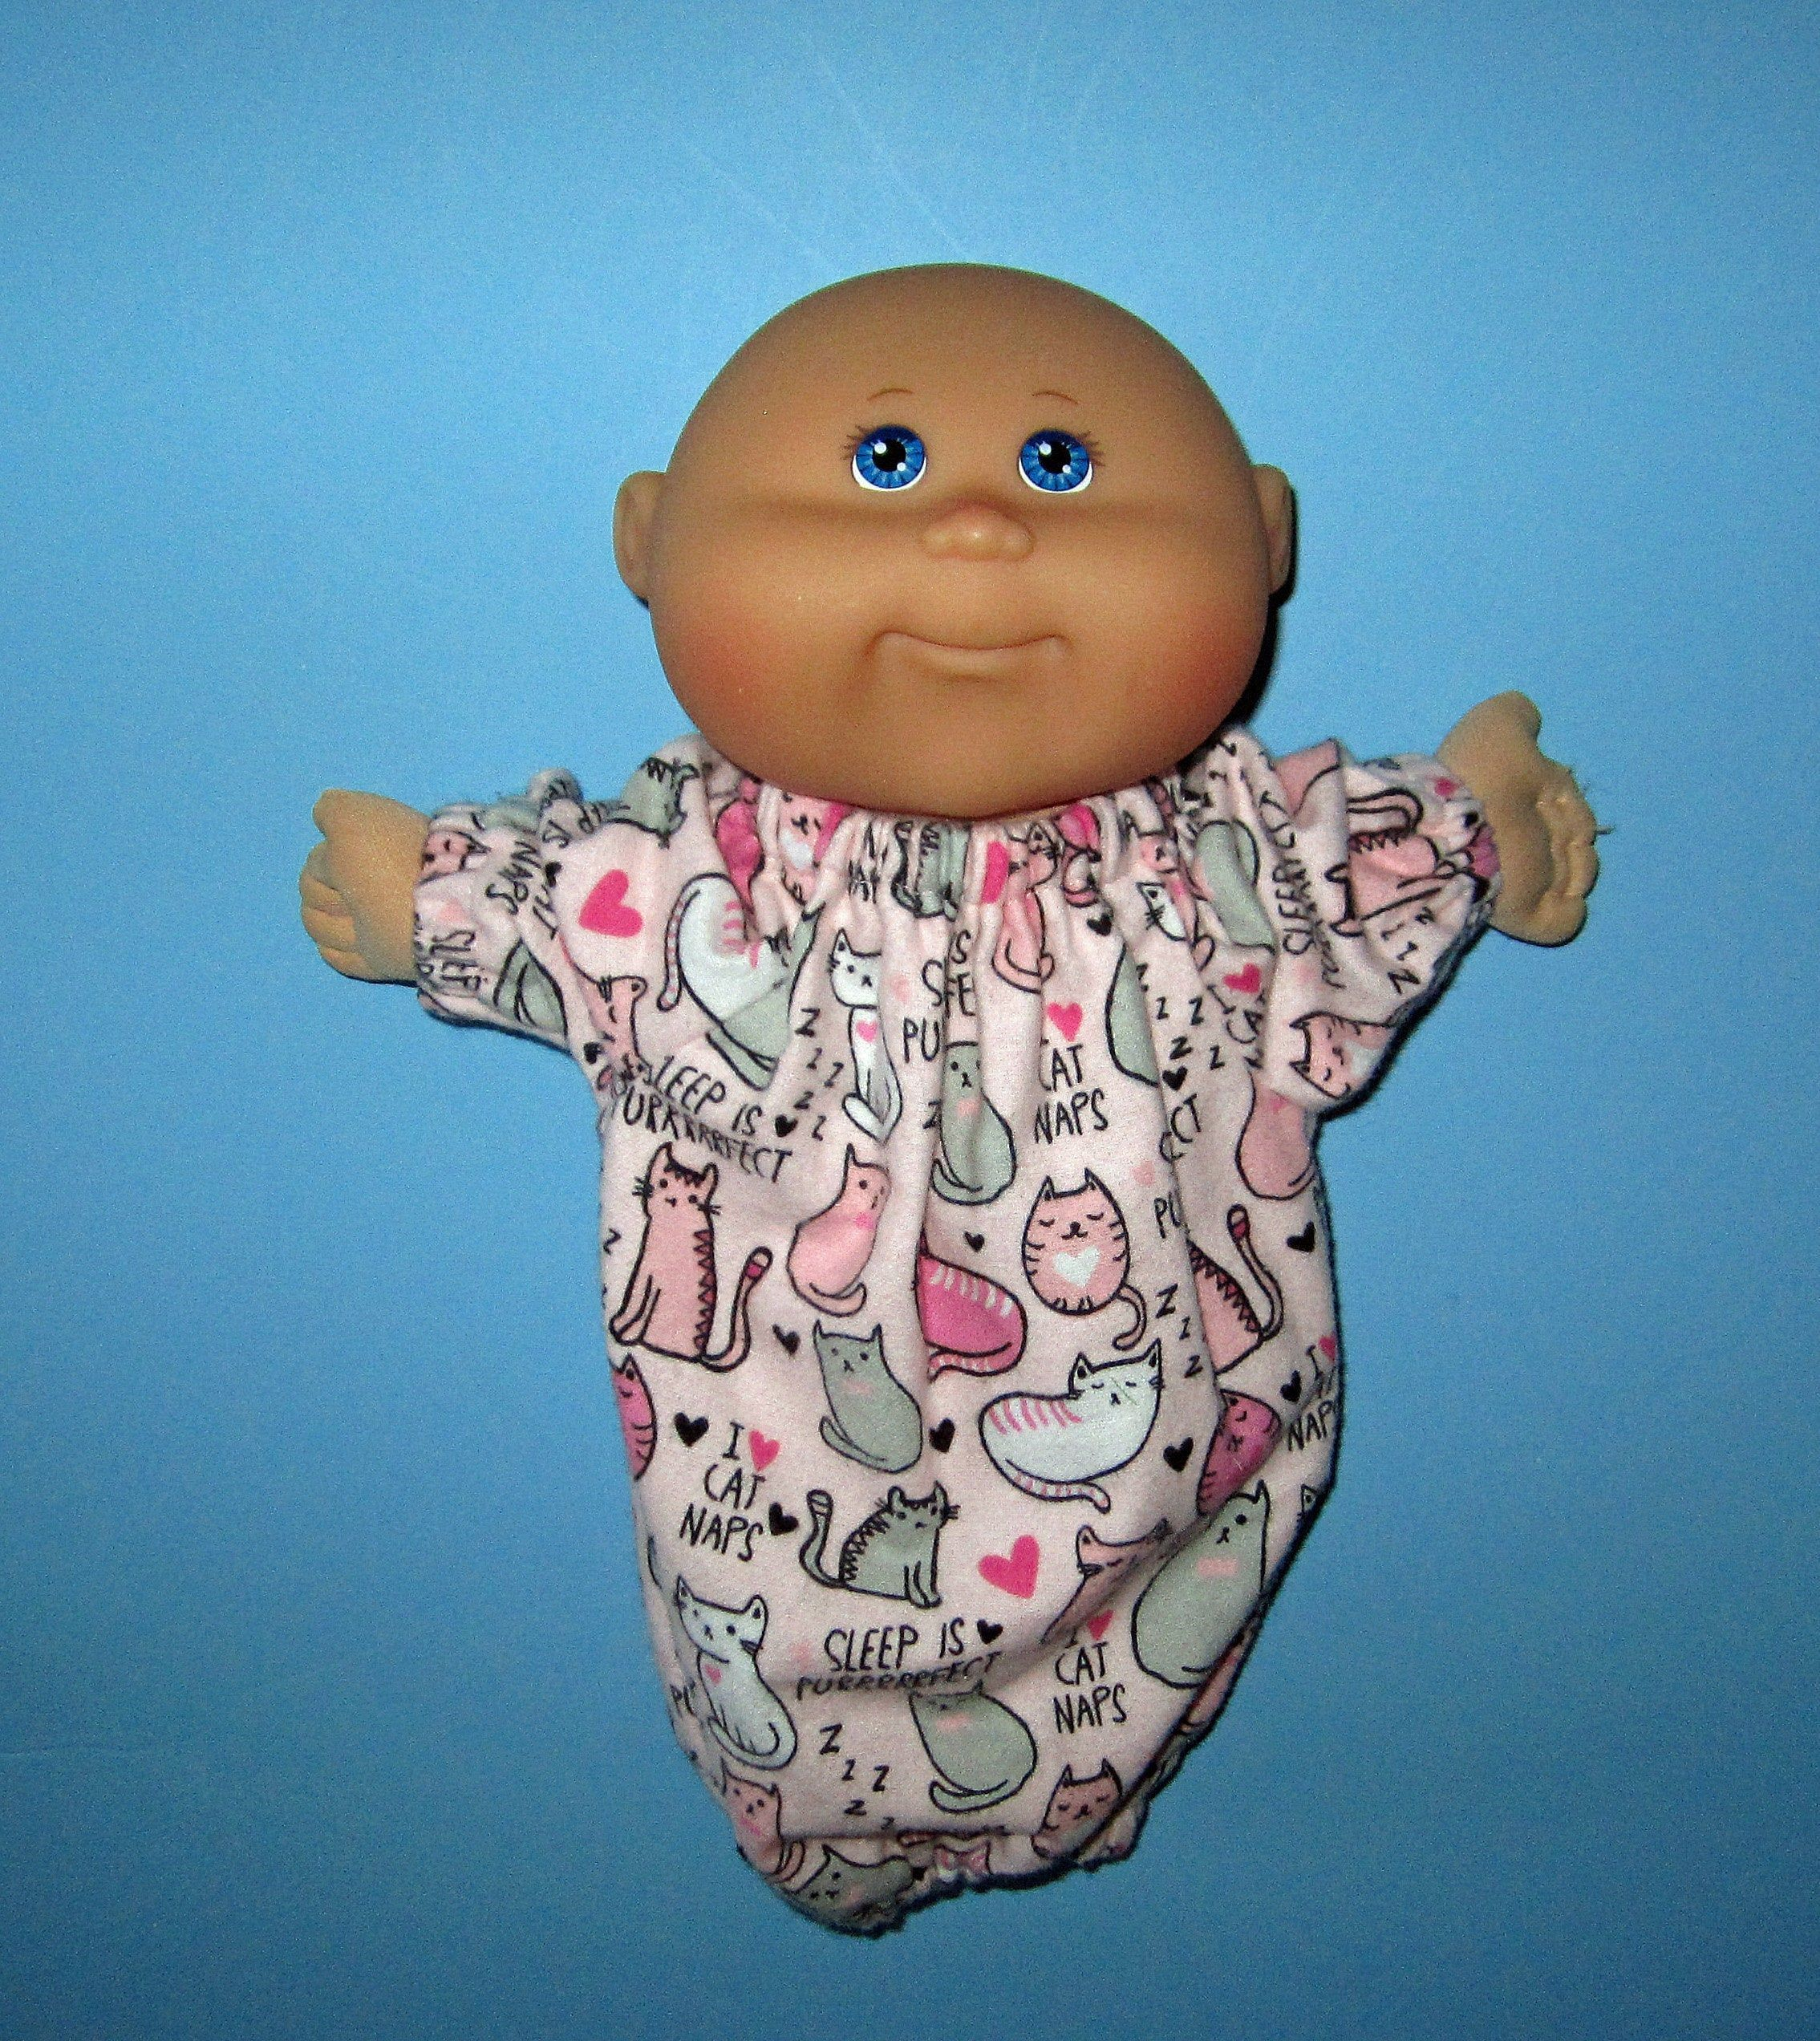 Cabbage Patch Surprise Doll Clothes Pink Kitty Cat Sleeper Etsy Doll Clothes Cabbage Patch Kids Cabbage Patch Dolls